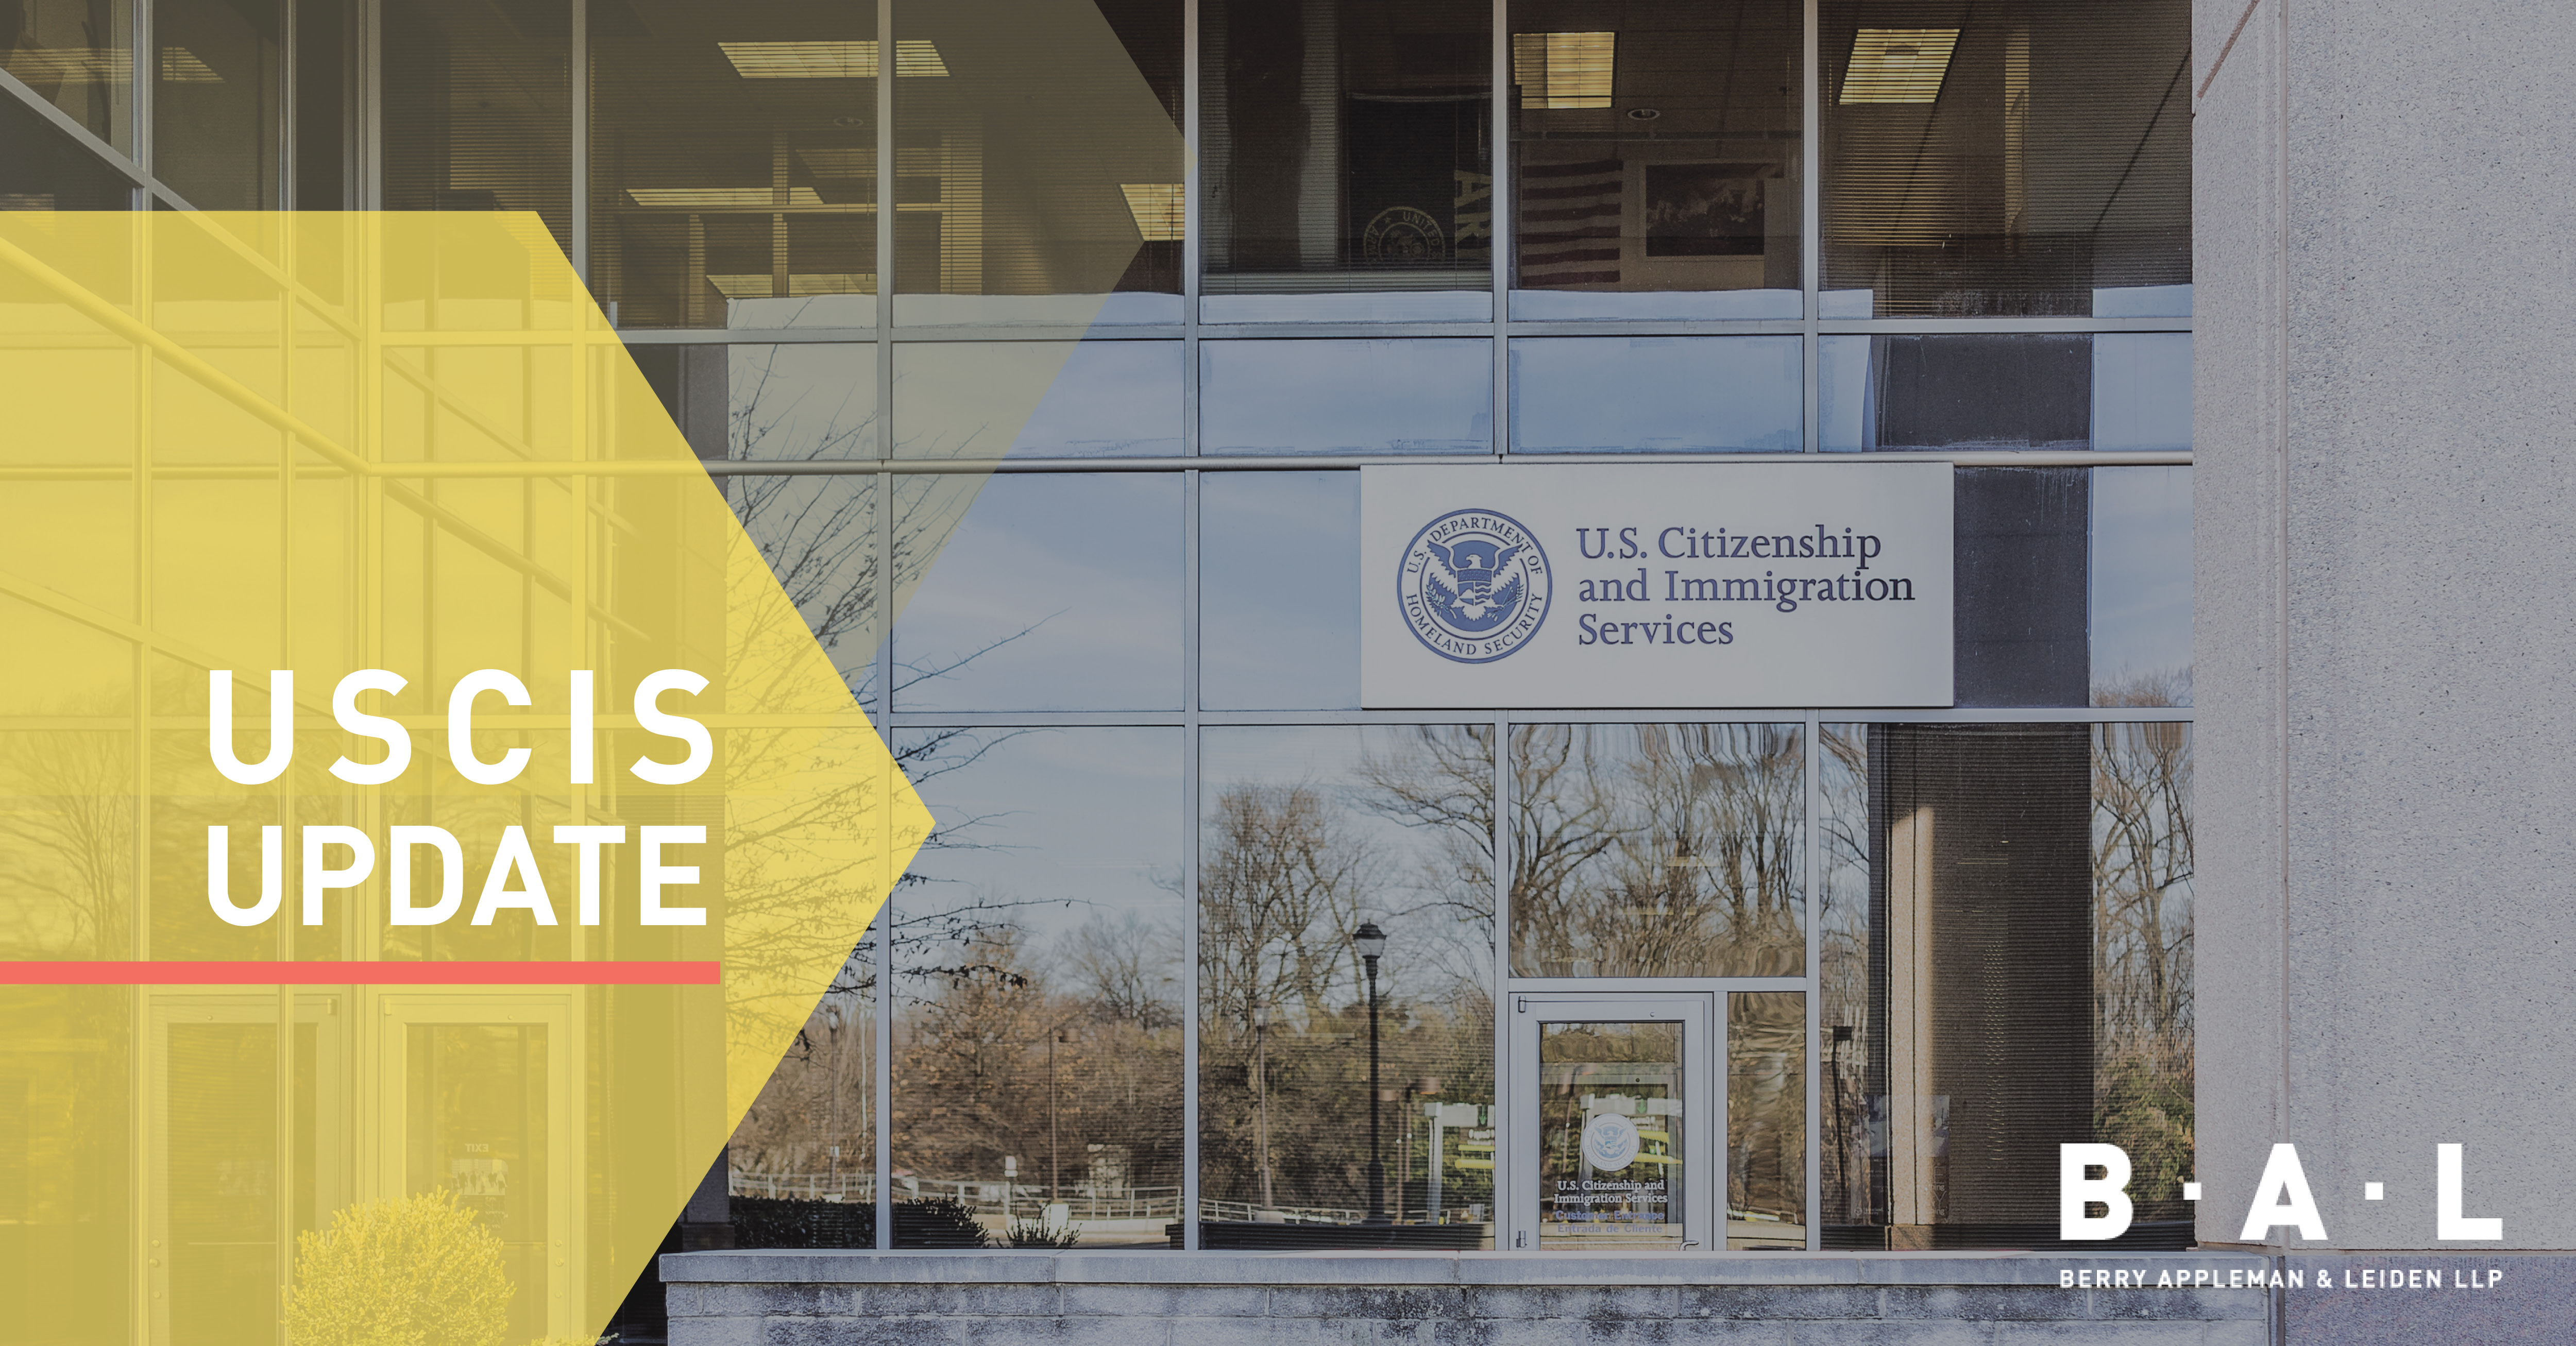 United States: H-1B cap update: USCIS completes data entry - B A L